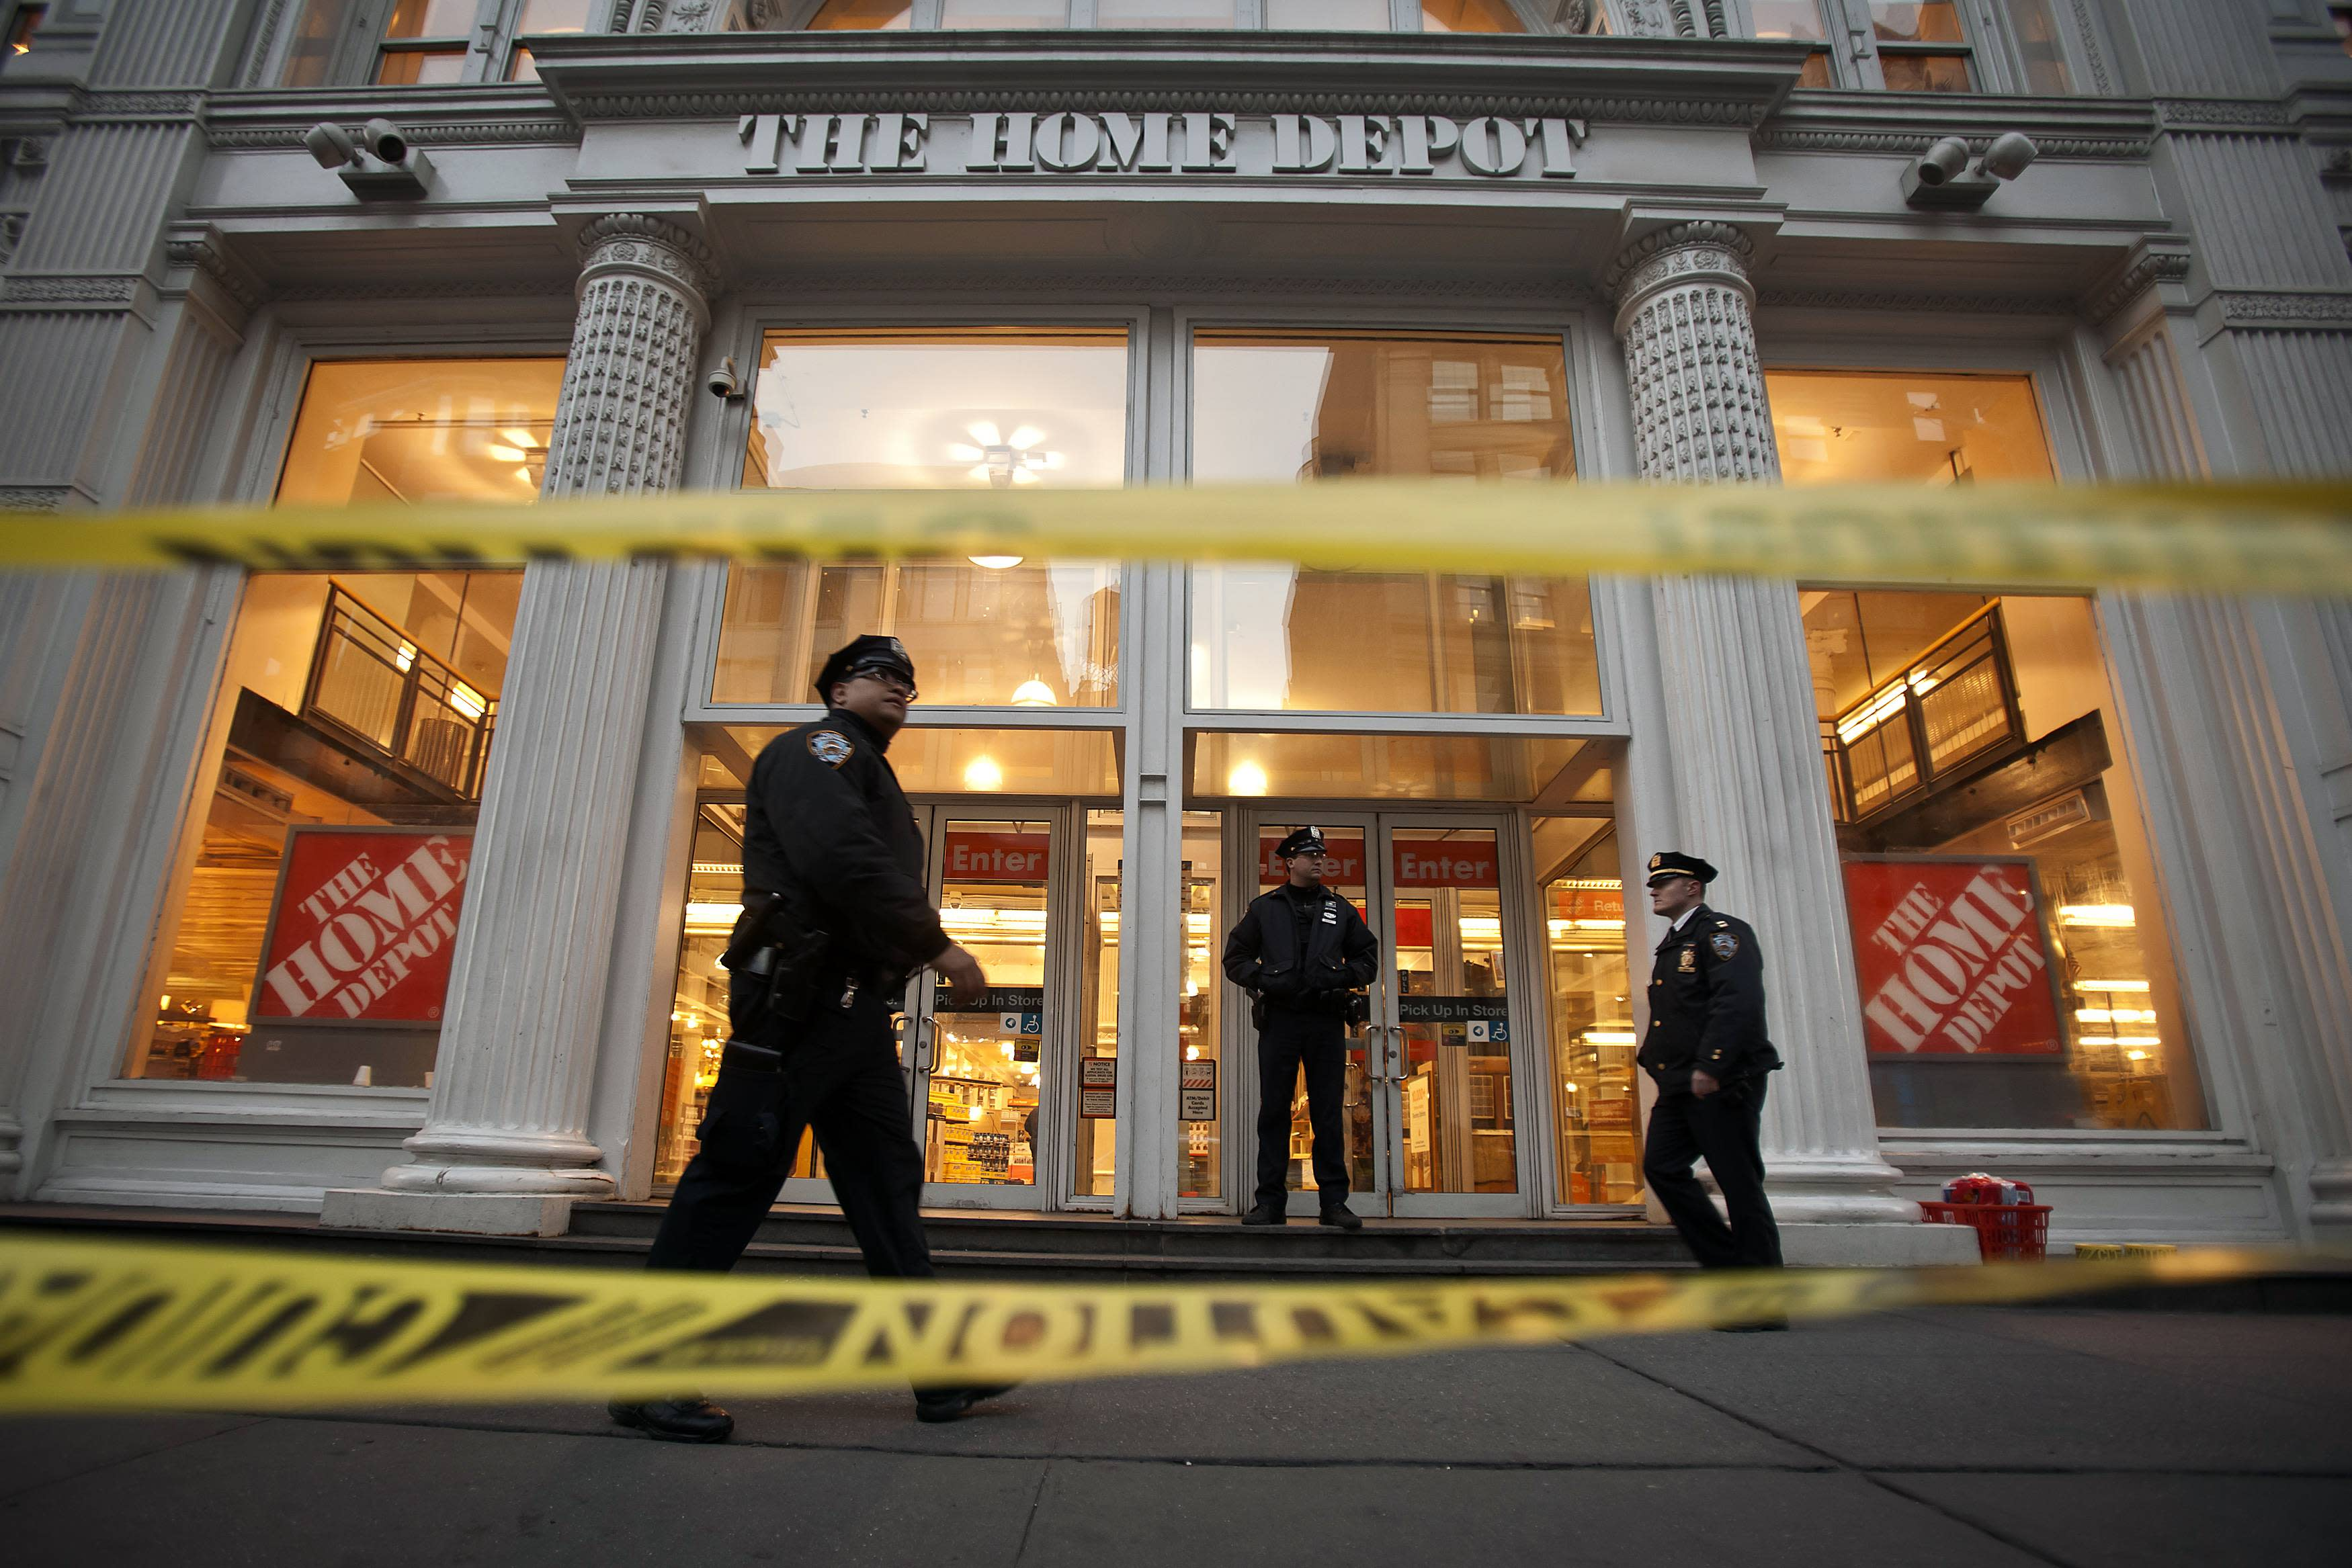 NYC Home Depot shooting